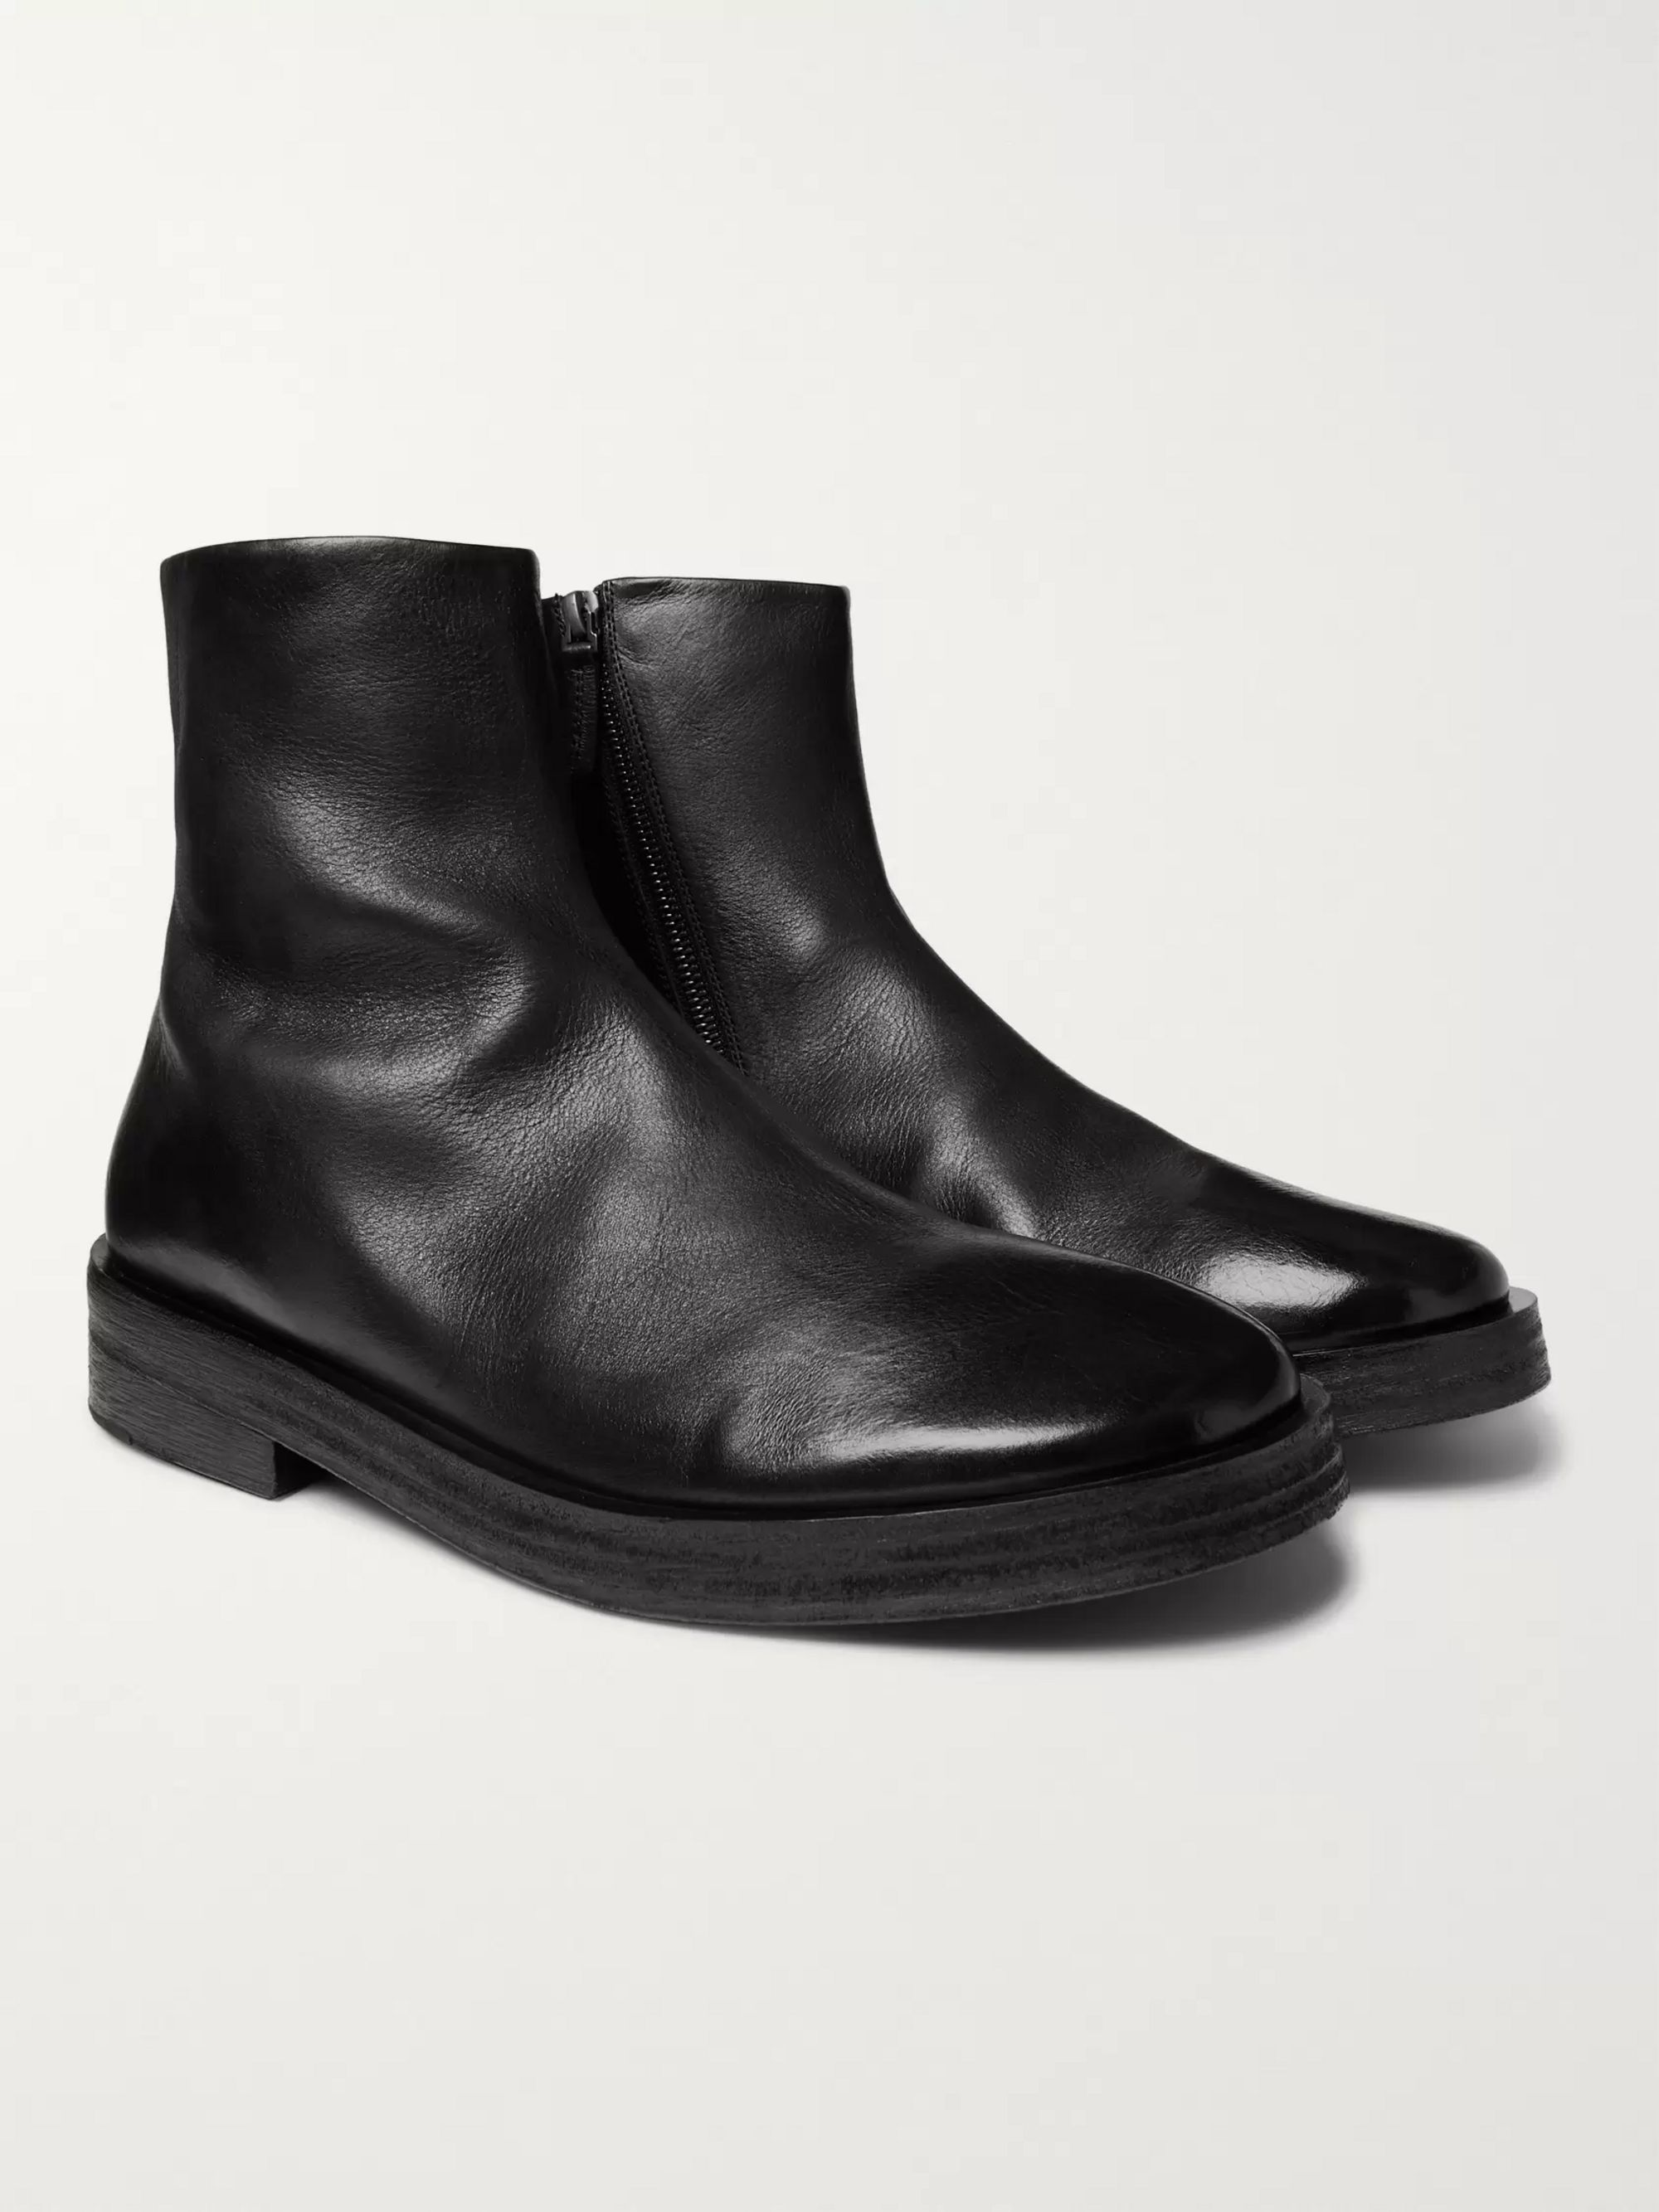 Listone Burnished Leather Chelsea Boots by Marsell